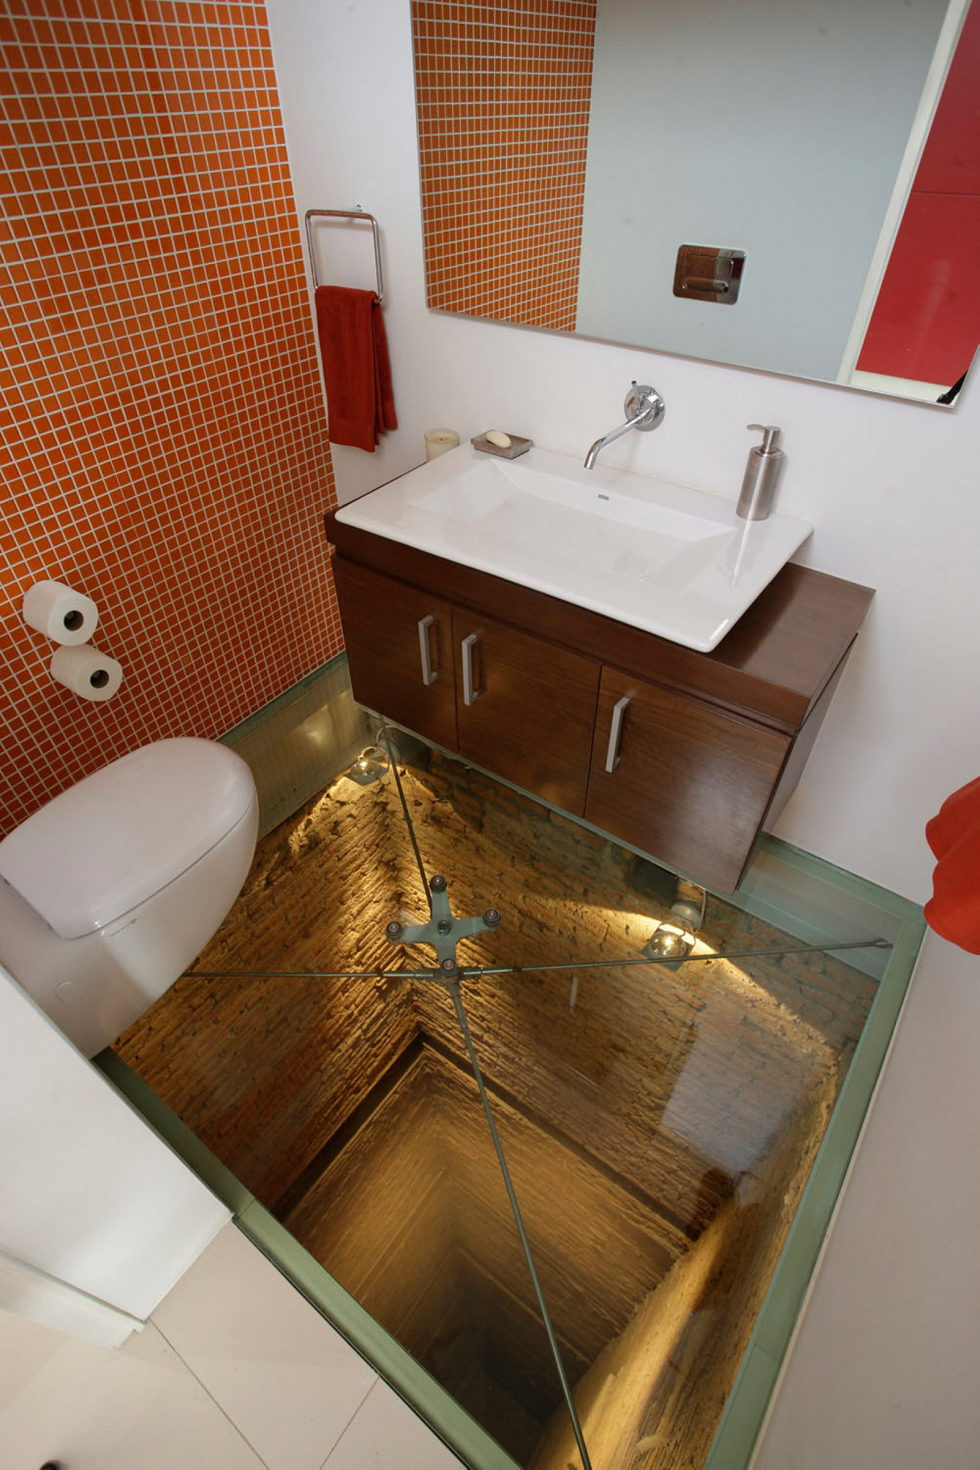 Penthouse with Glass Floor Bathroom, Guadalajara, Mexico - Glass Floor Bathroom